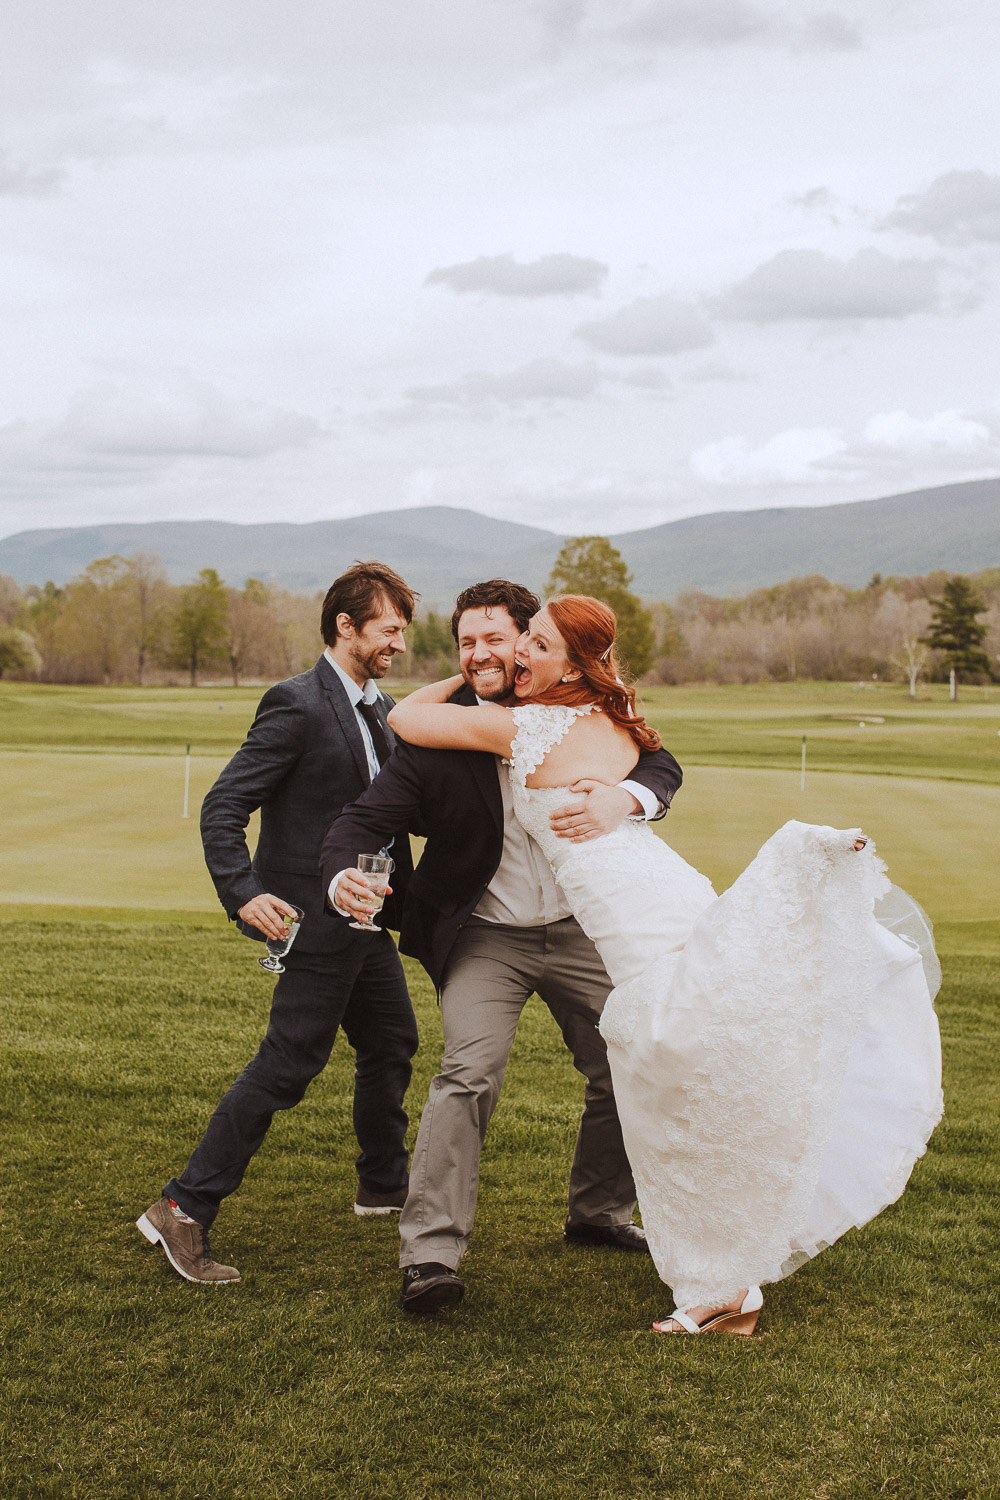 Wedding in Manchester Vermont